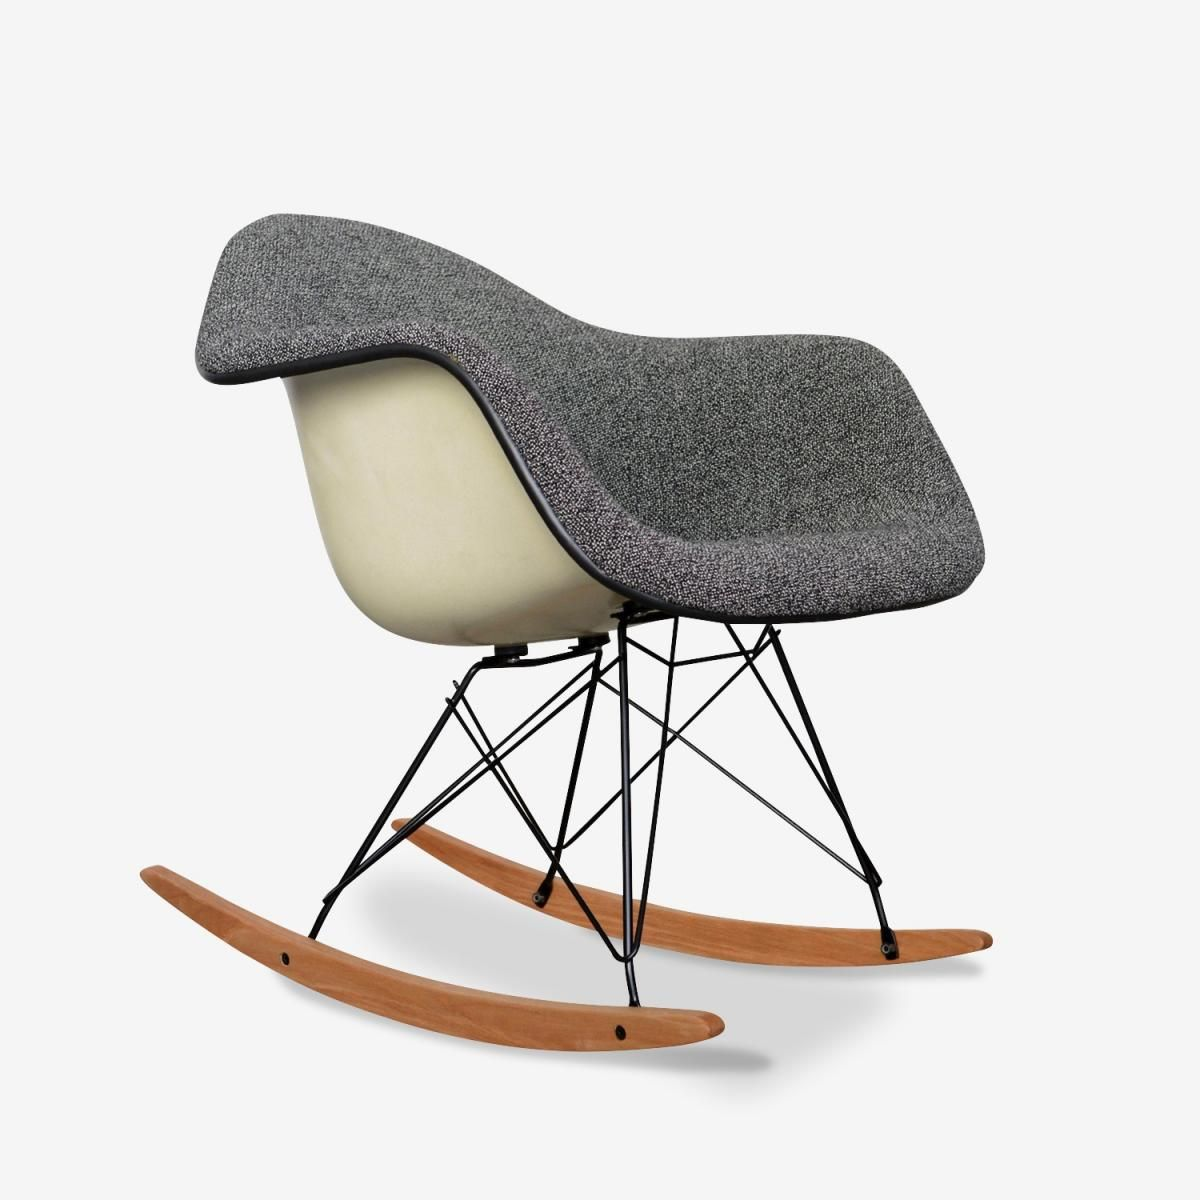 chaise eames bascule beautiful chaise imitation eames. Black Bedroom Furniture Sets. Home Design Ideas